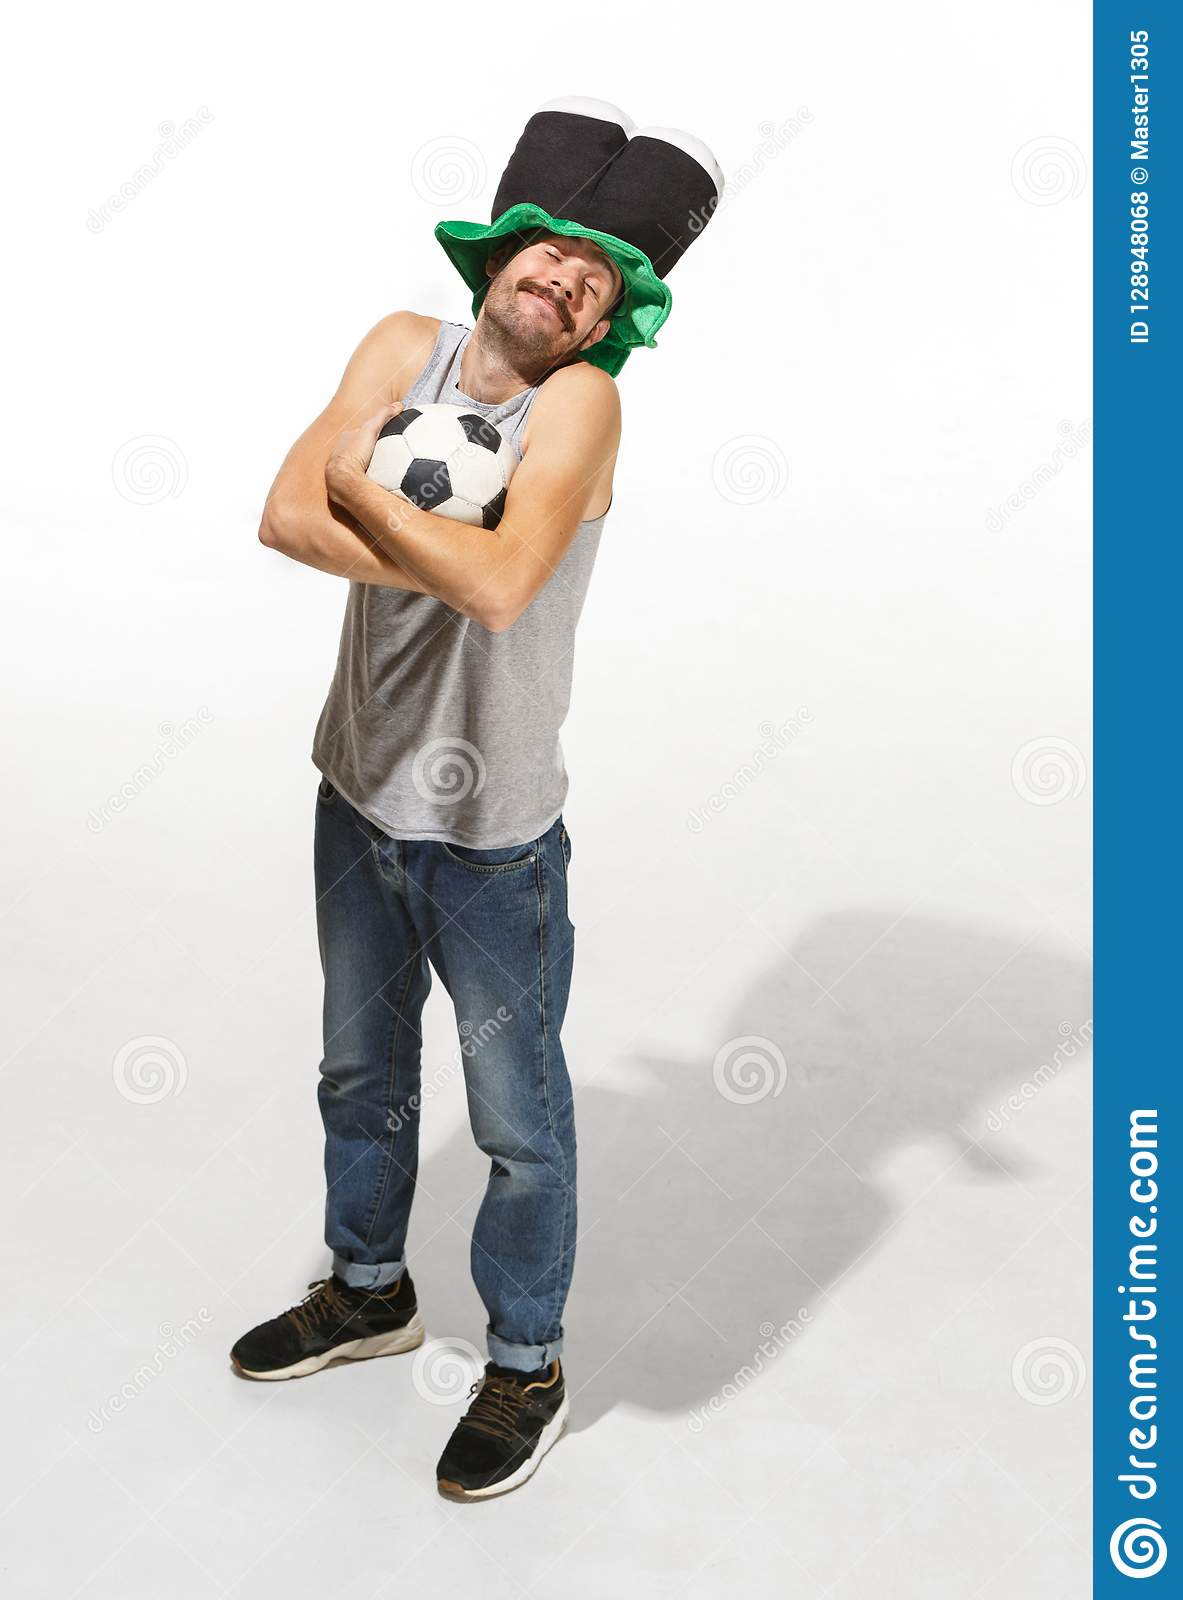 The young football fan - man hugging soccer ball isolated on a white background